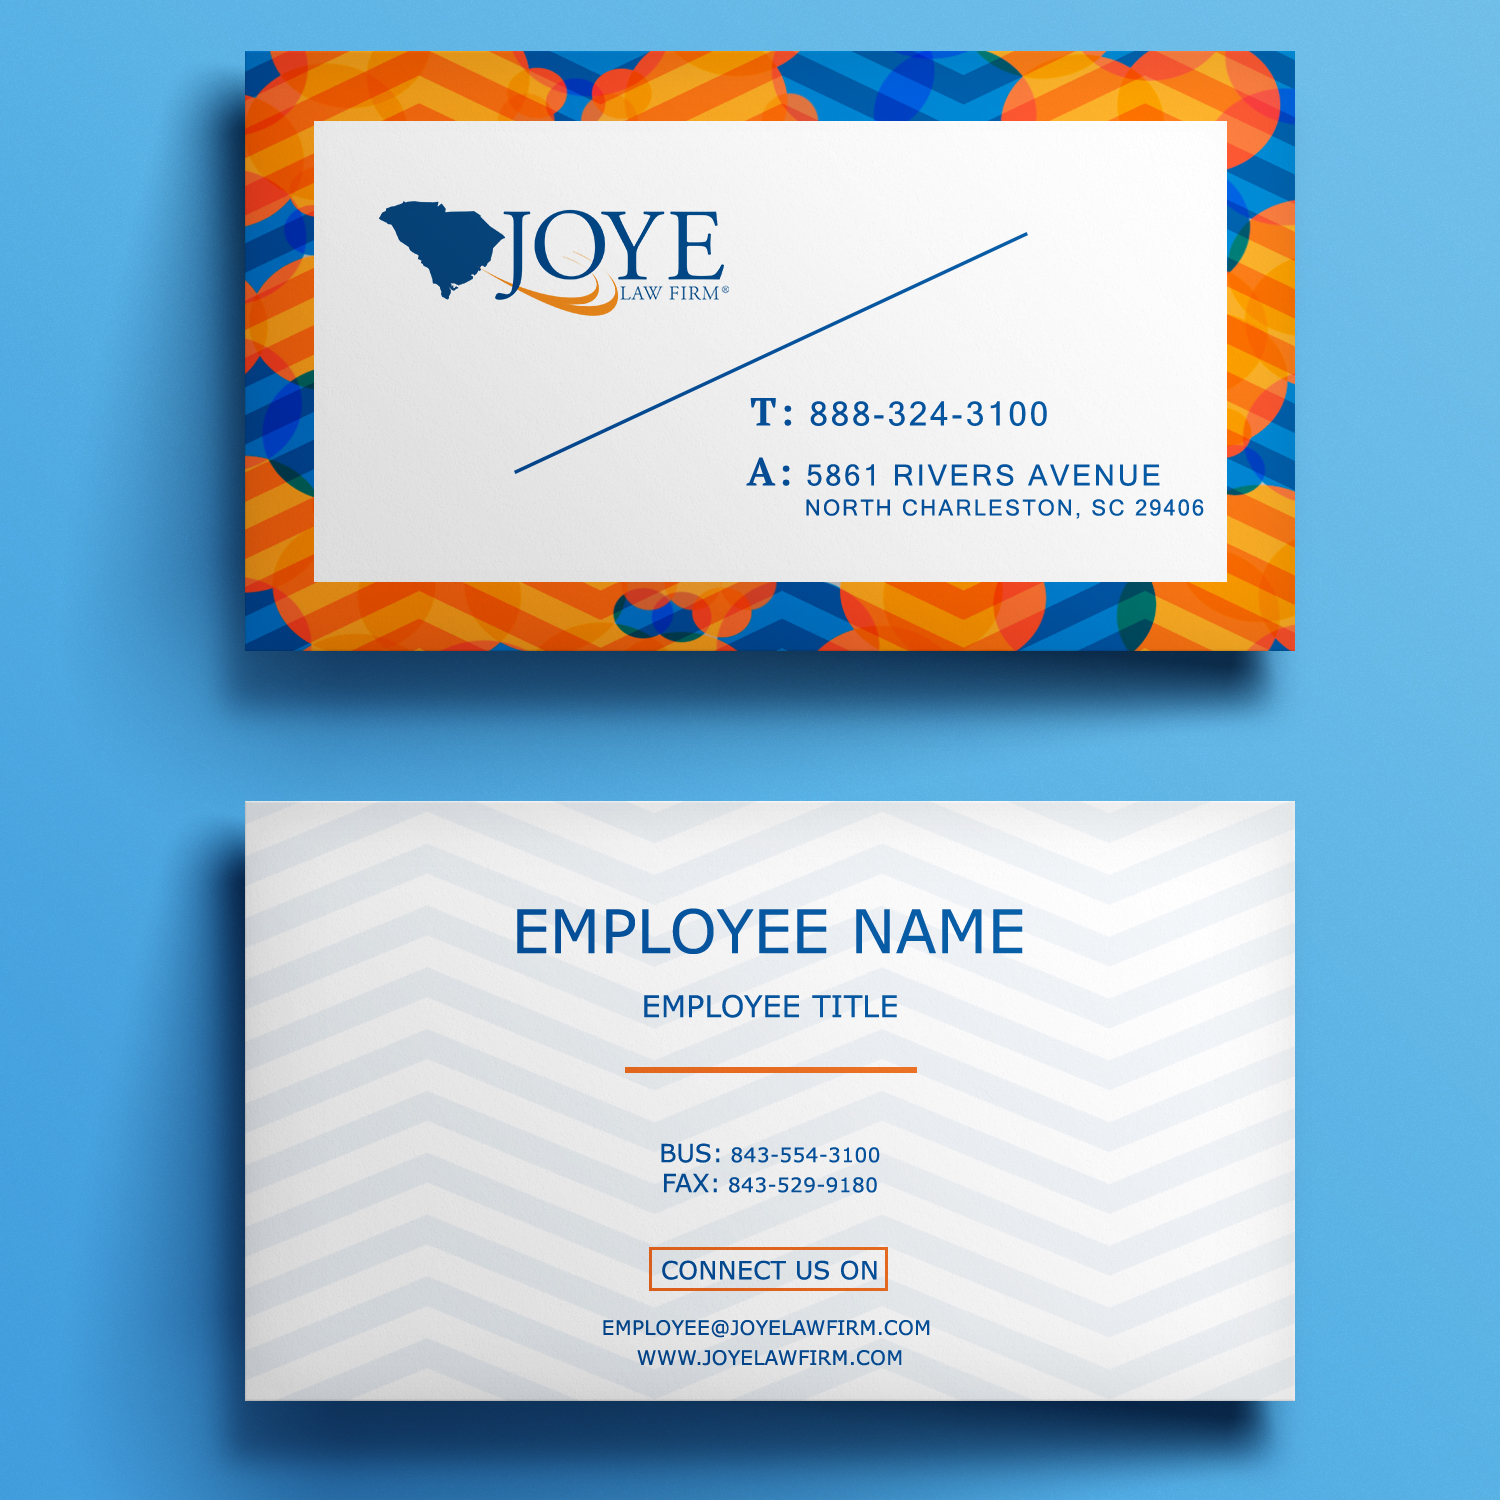 Bold Modern Business Card Design for Joye Law Firm by Mariami